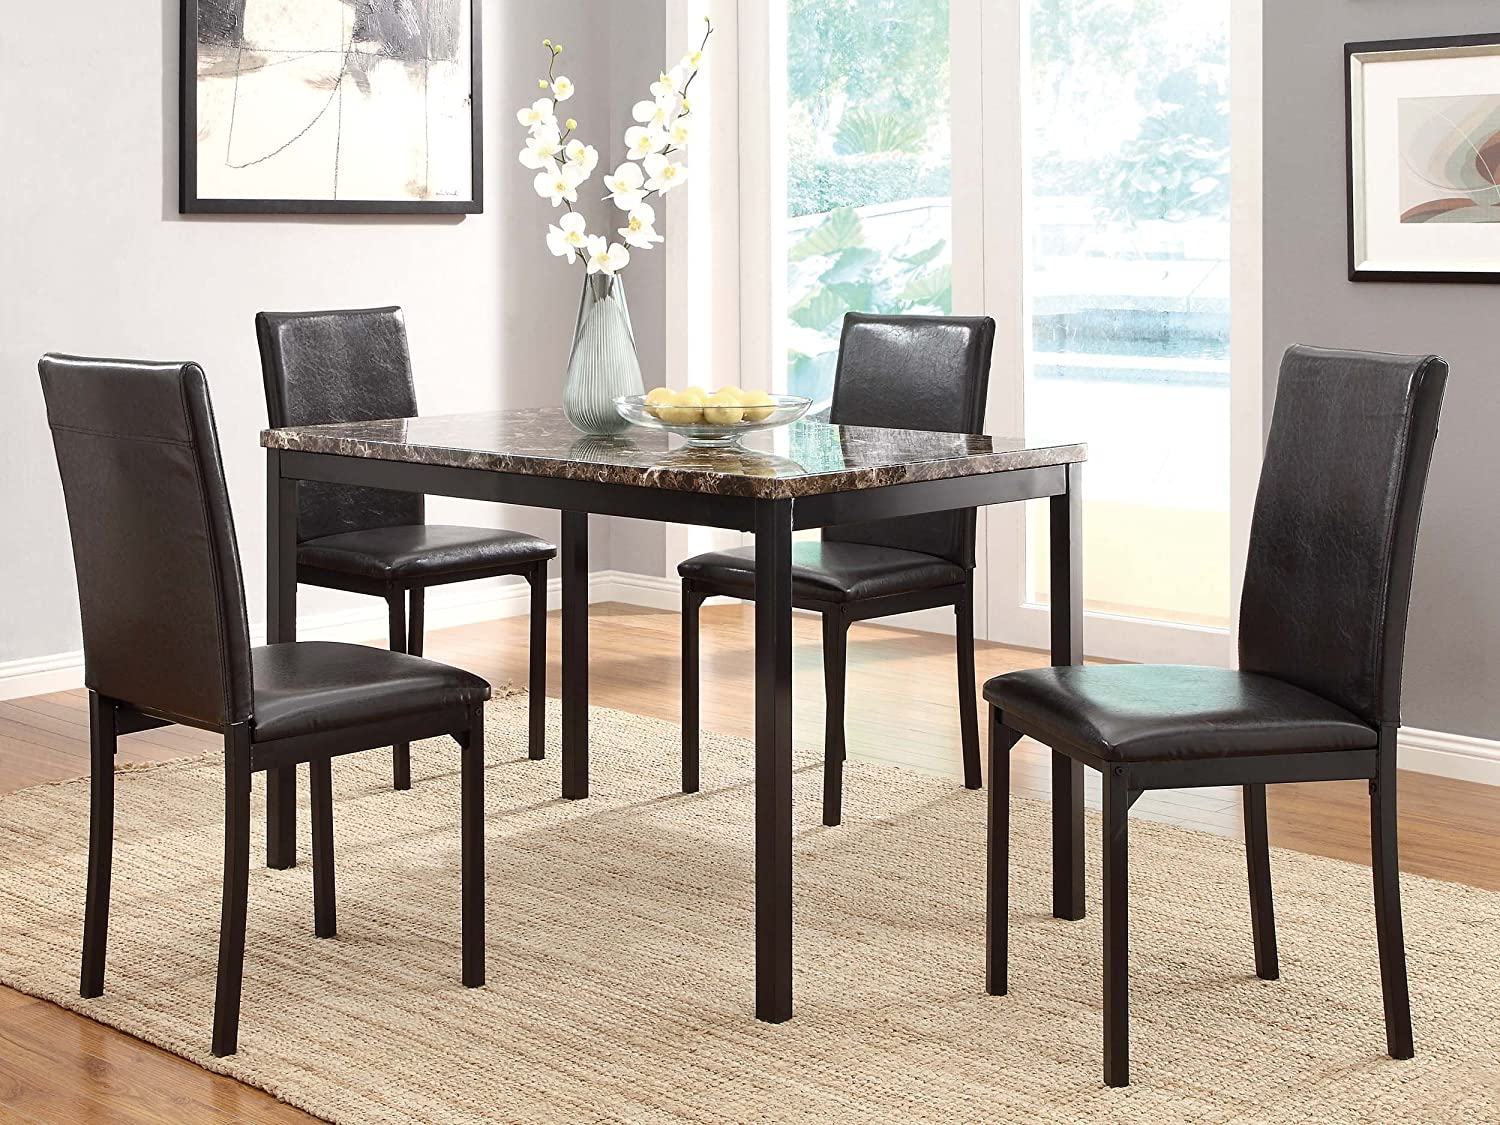 Amazon.com: Homelegance Tempe 5-Piece Metal Dinette Set, Laminated ...